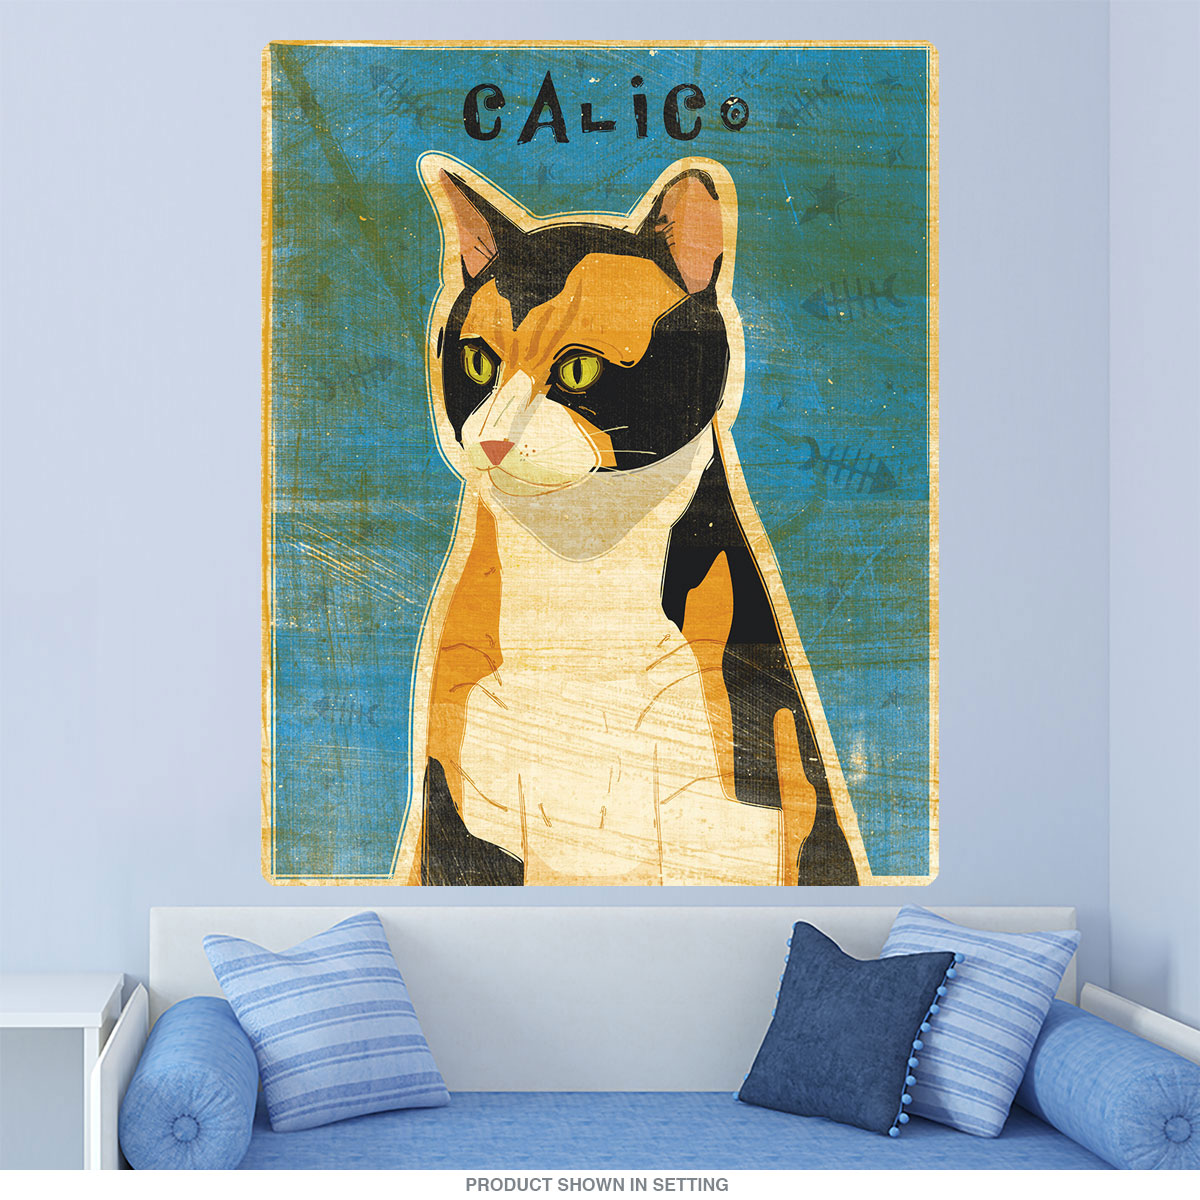 Calico Pet Cat Rustic Wall Decal at Retro Planet